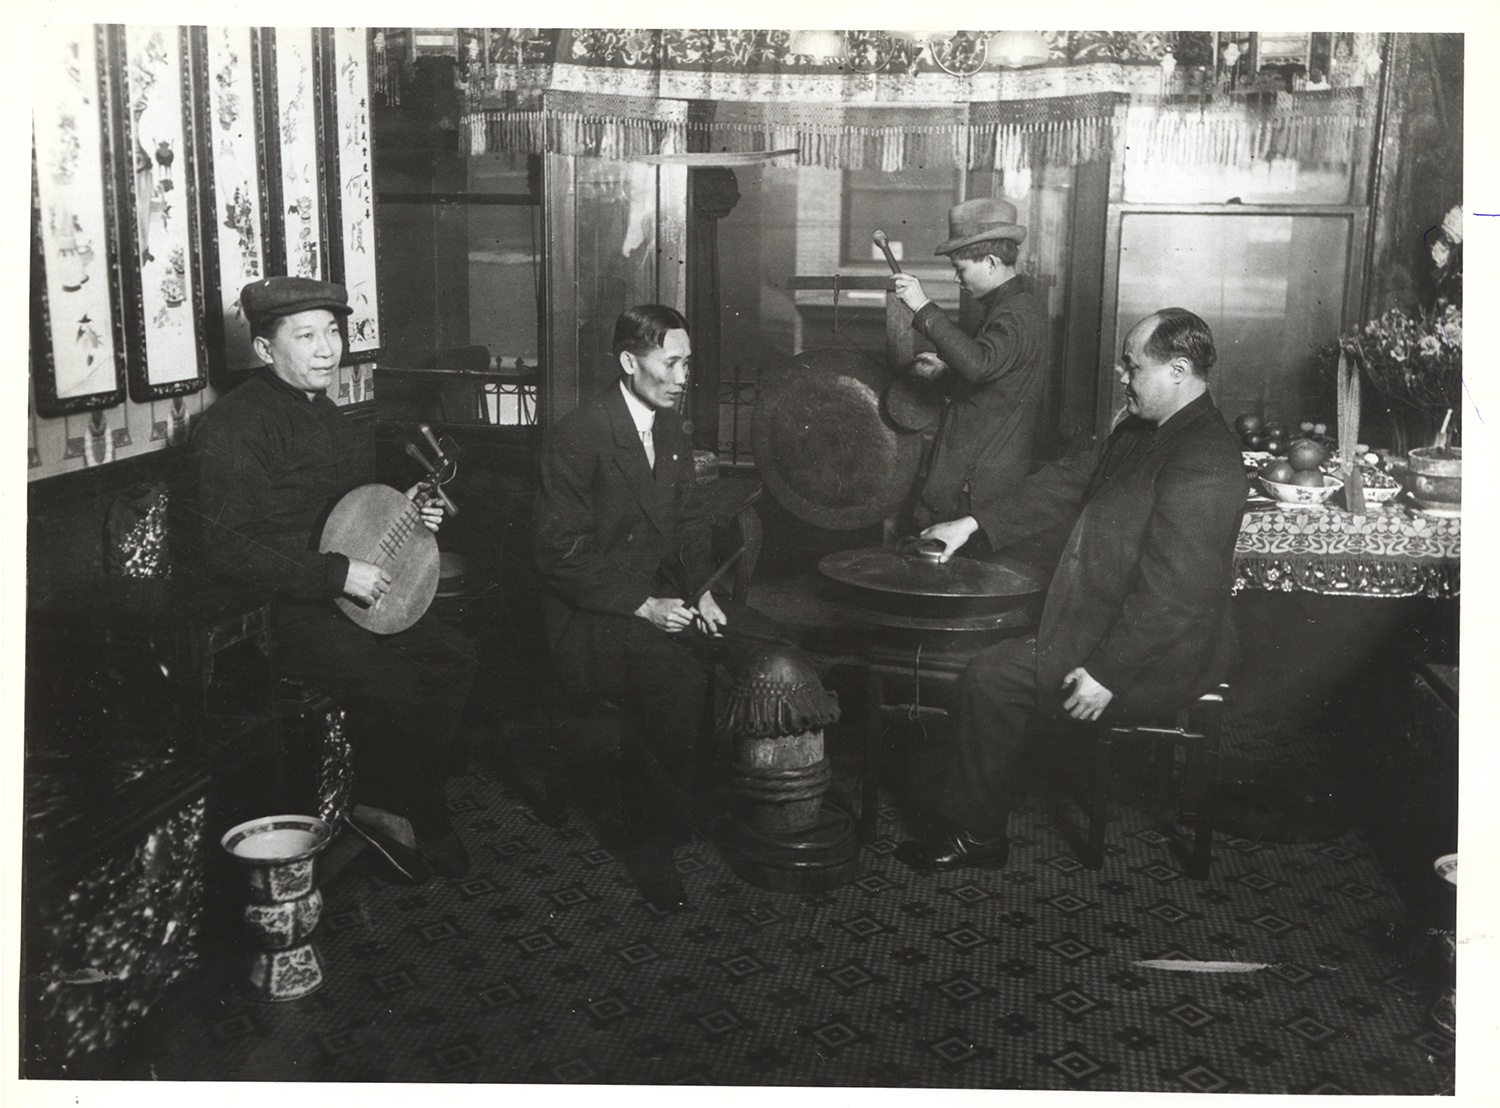 Men play traditional instruments in Chinatown, 1912. Gift of Elenore Seidenberg, MSP 566, Detre Library & Archives at the History Center.